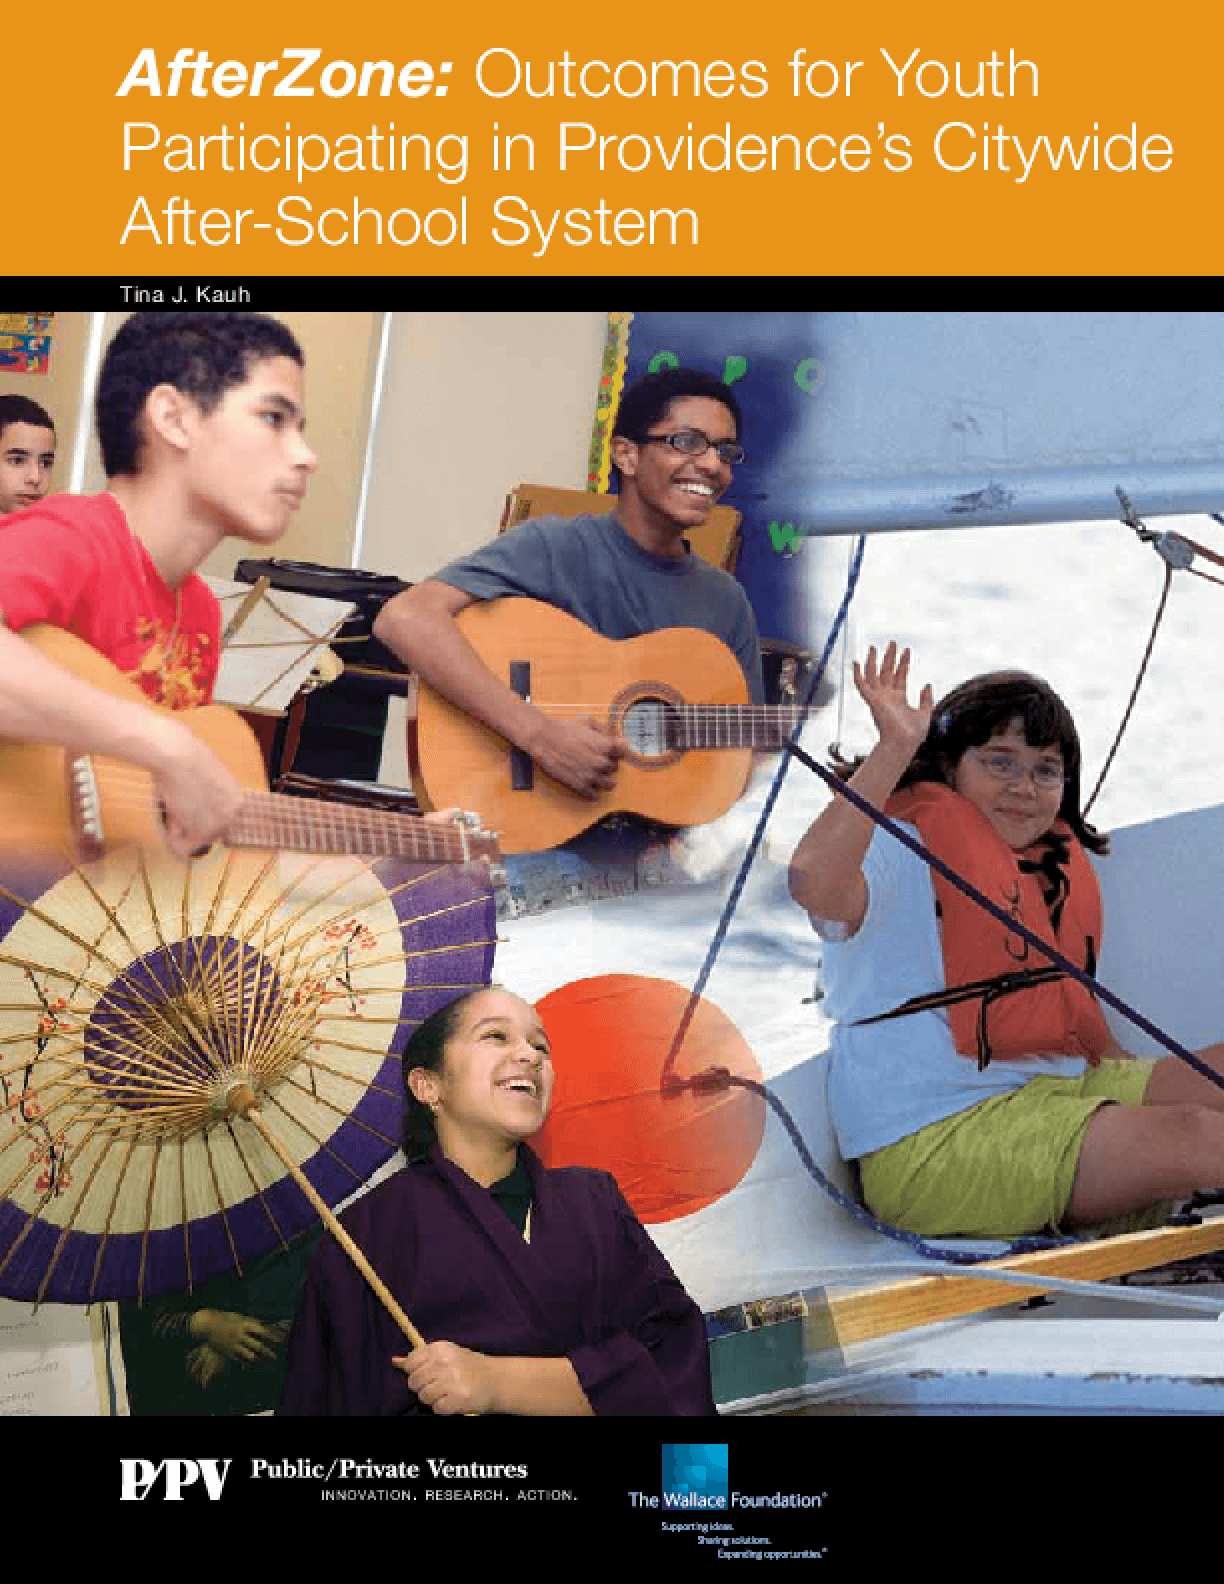 AfterZone: Outcomes for Youth Participating in Providence's Citywide After-School System